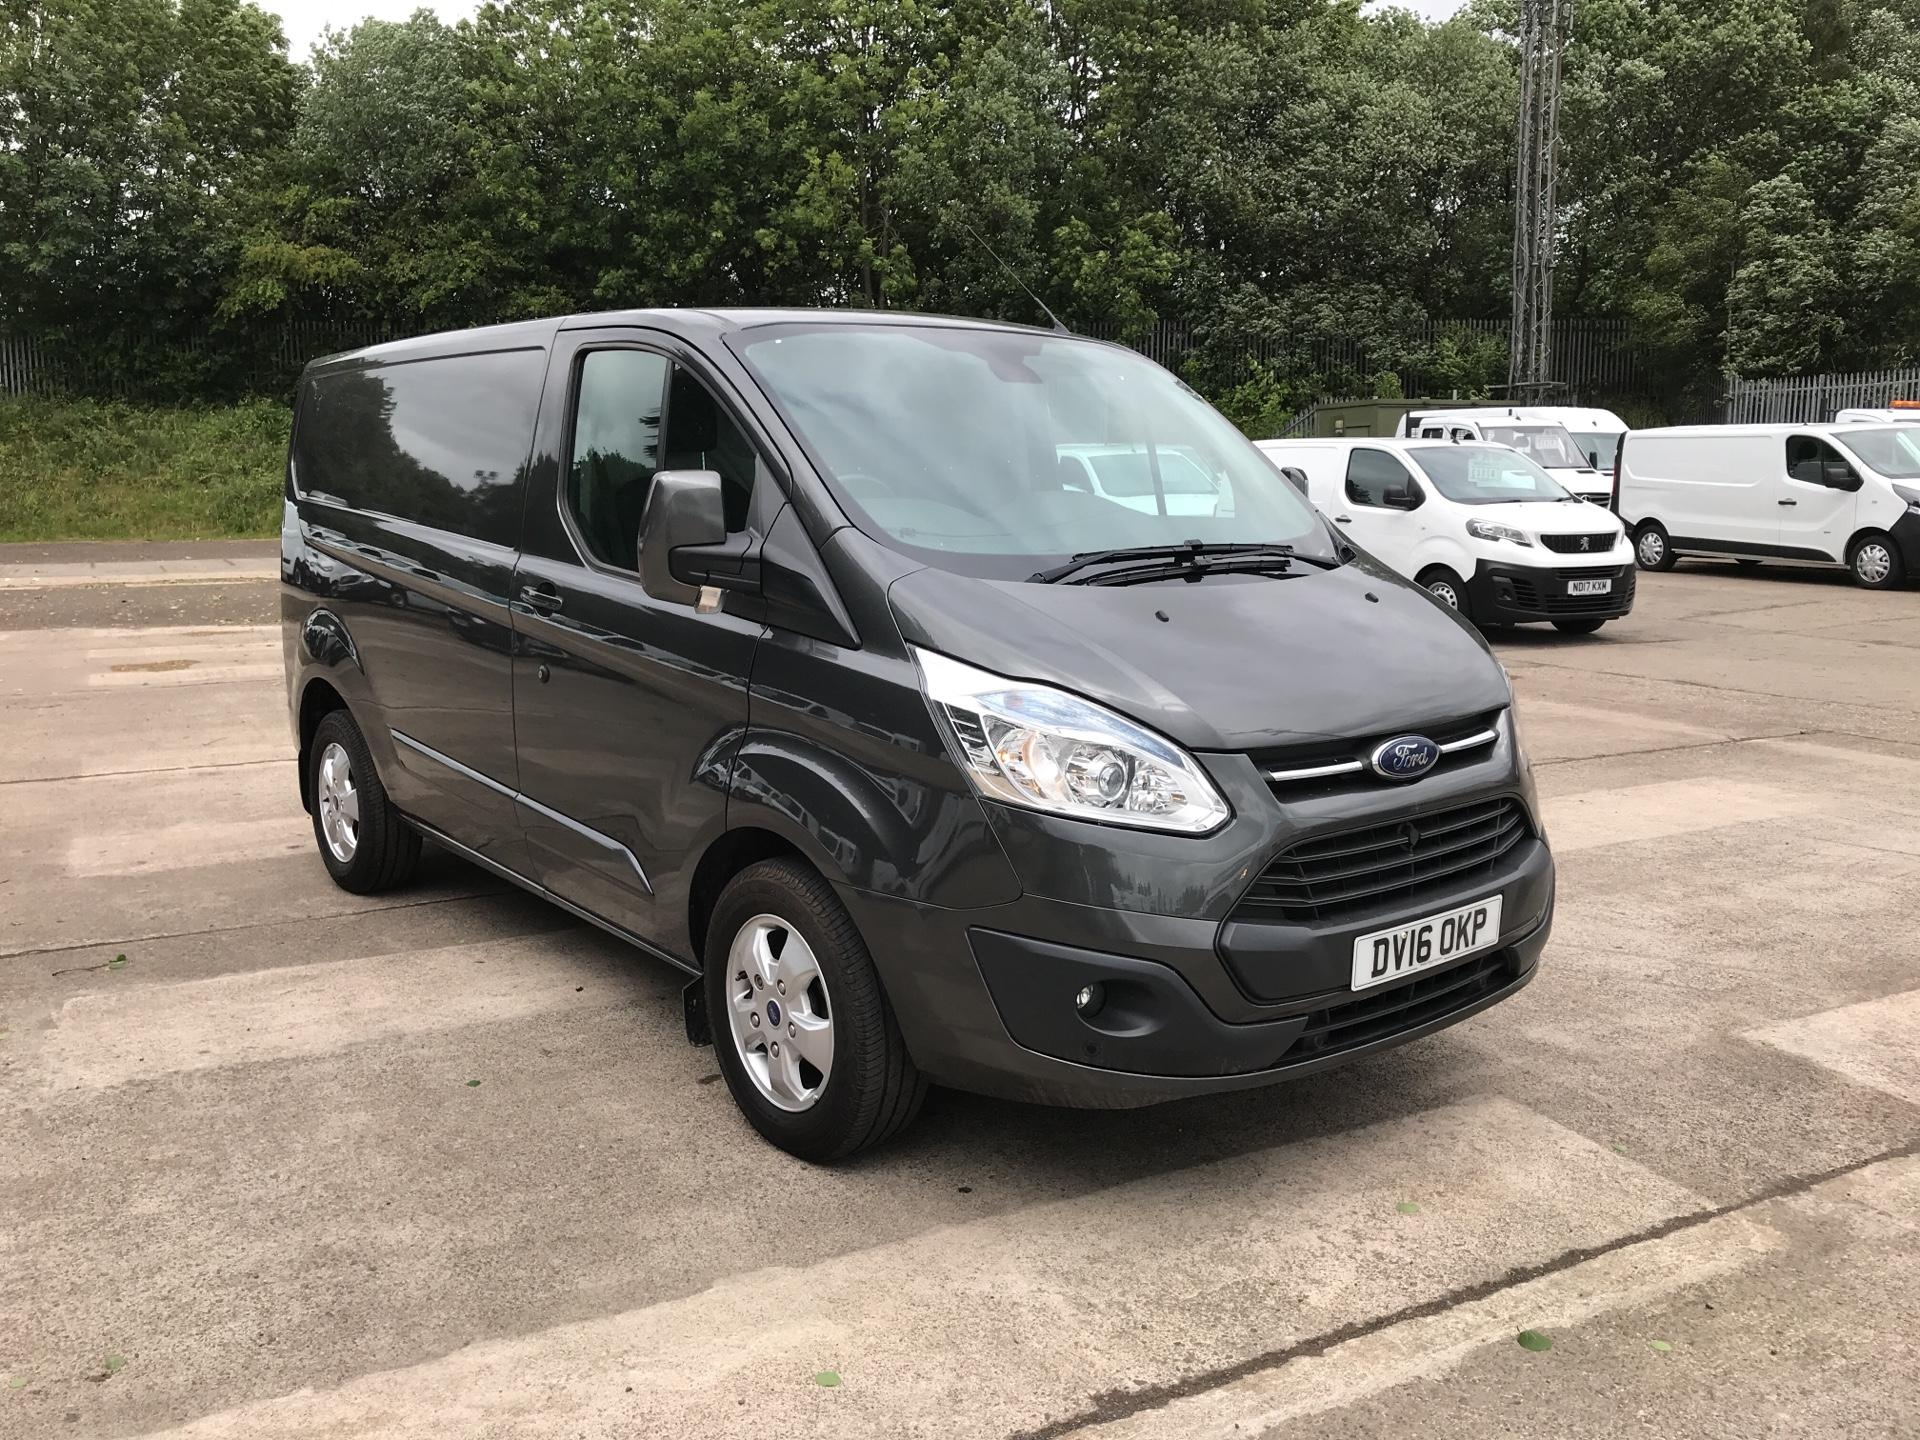 2016 Ford Transit Custom 290 L1 DIESEL FWD 2.2 TDCI 125PS LOW ROOF LIMITED VAN EURO 5 (DV16OKP)